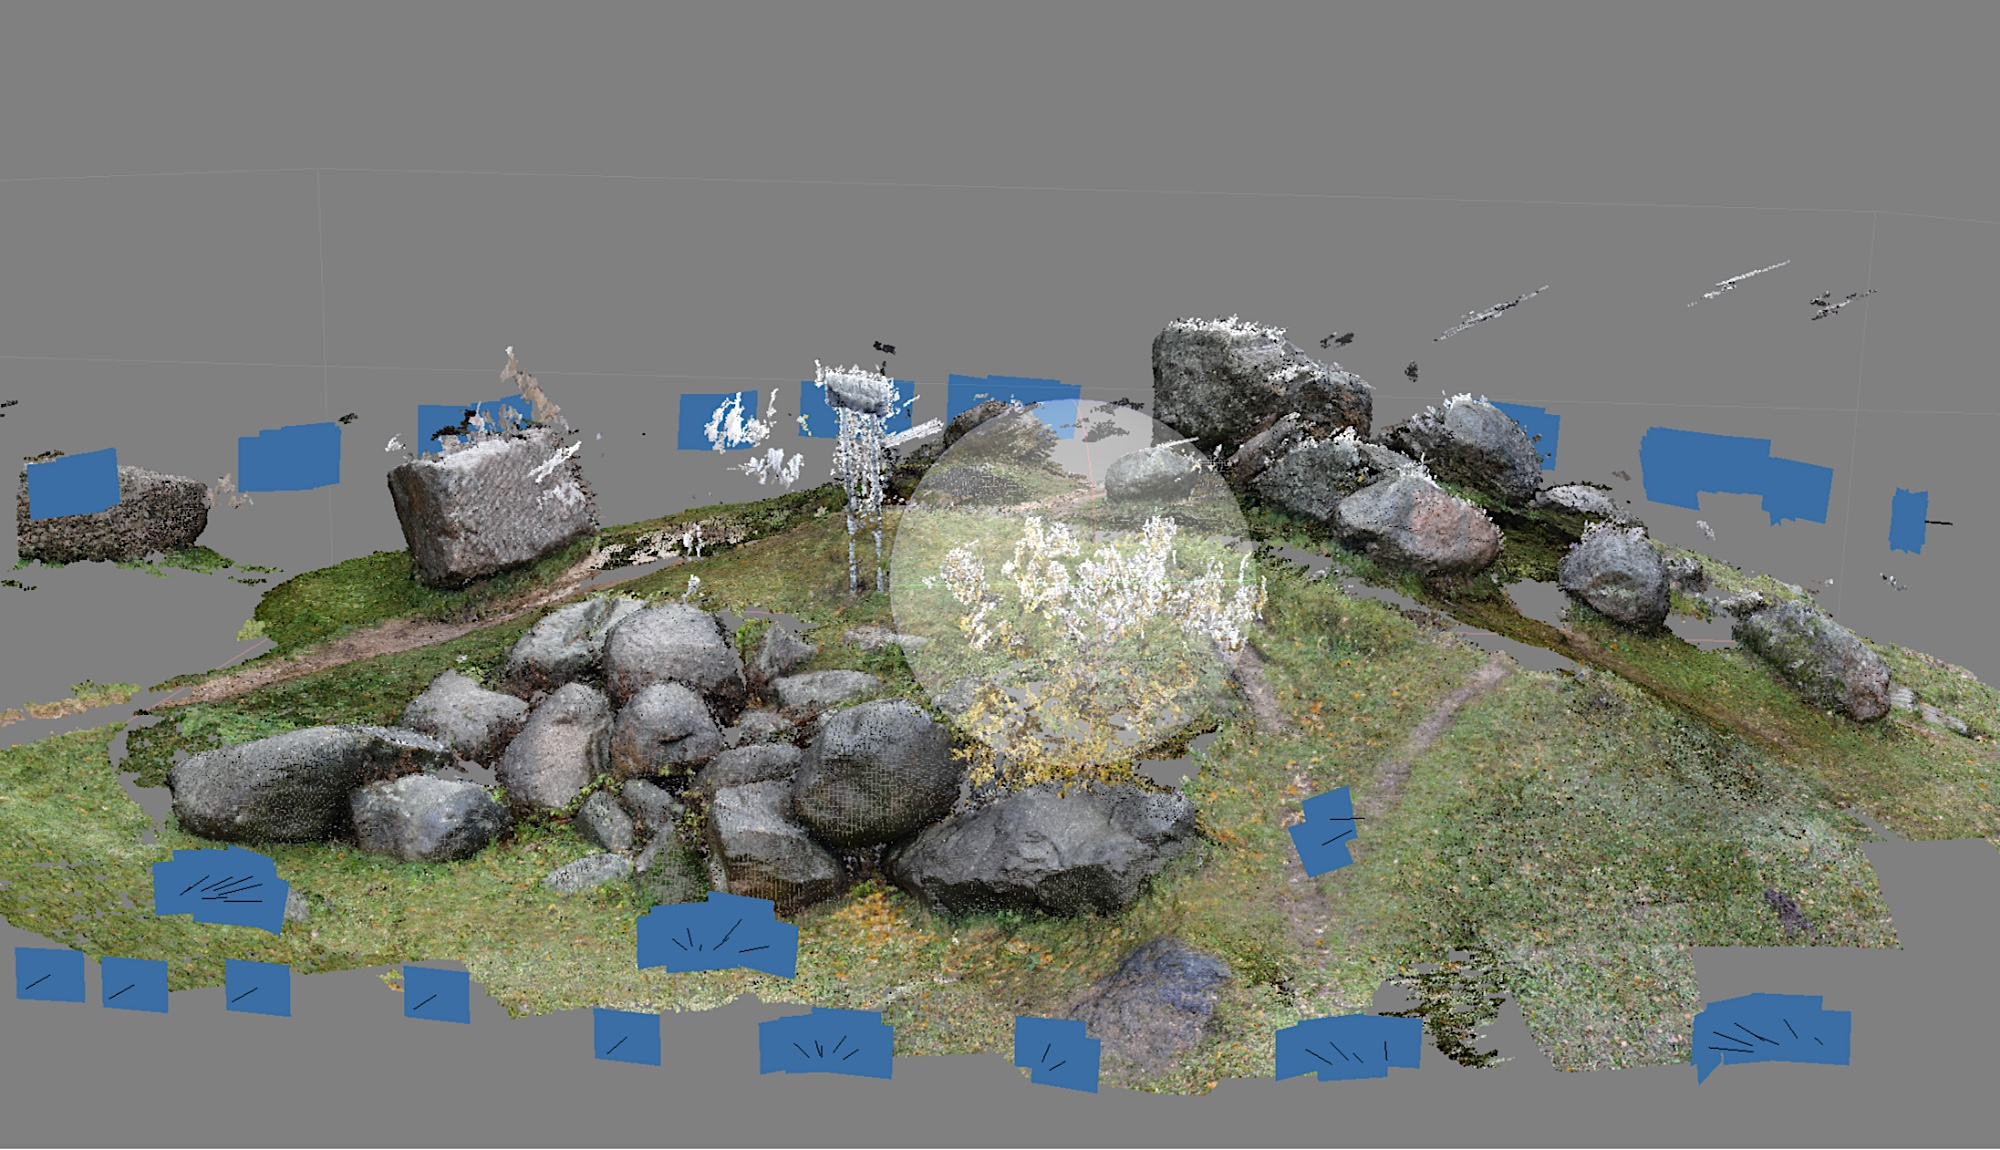 3d-scan of stones at the Museum of stones in Minsk / Taken by eeefff